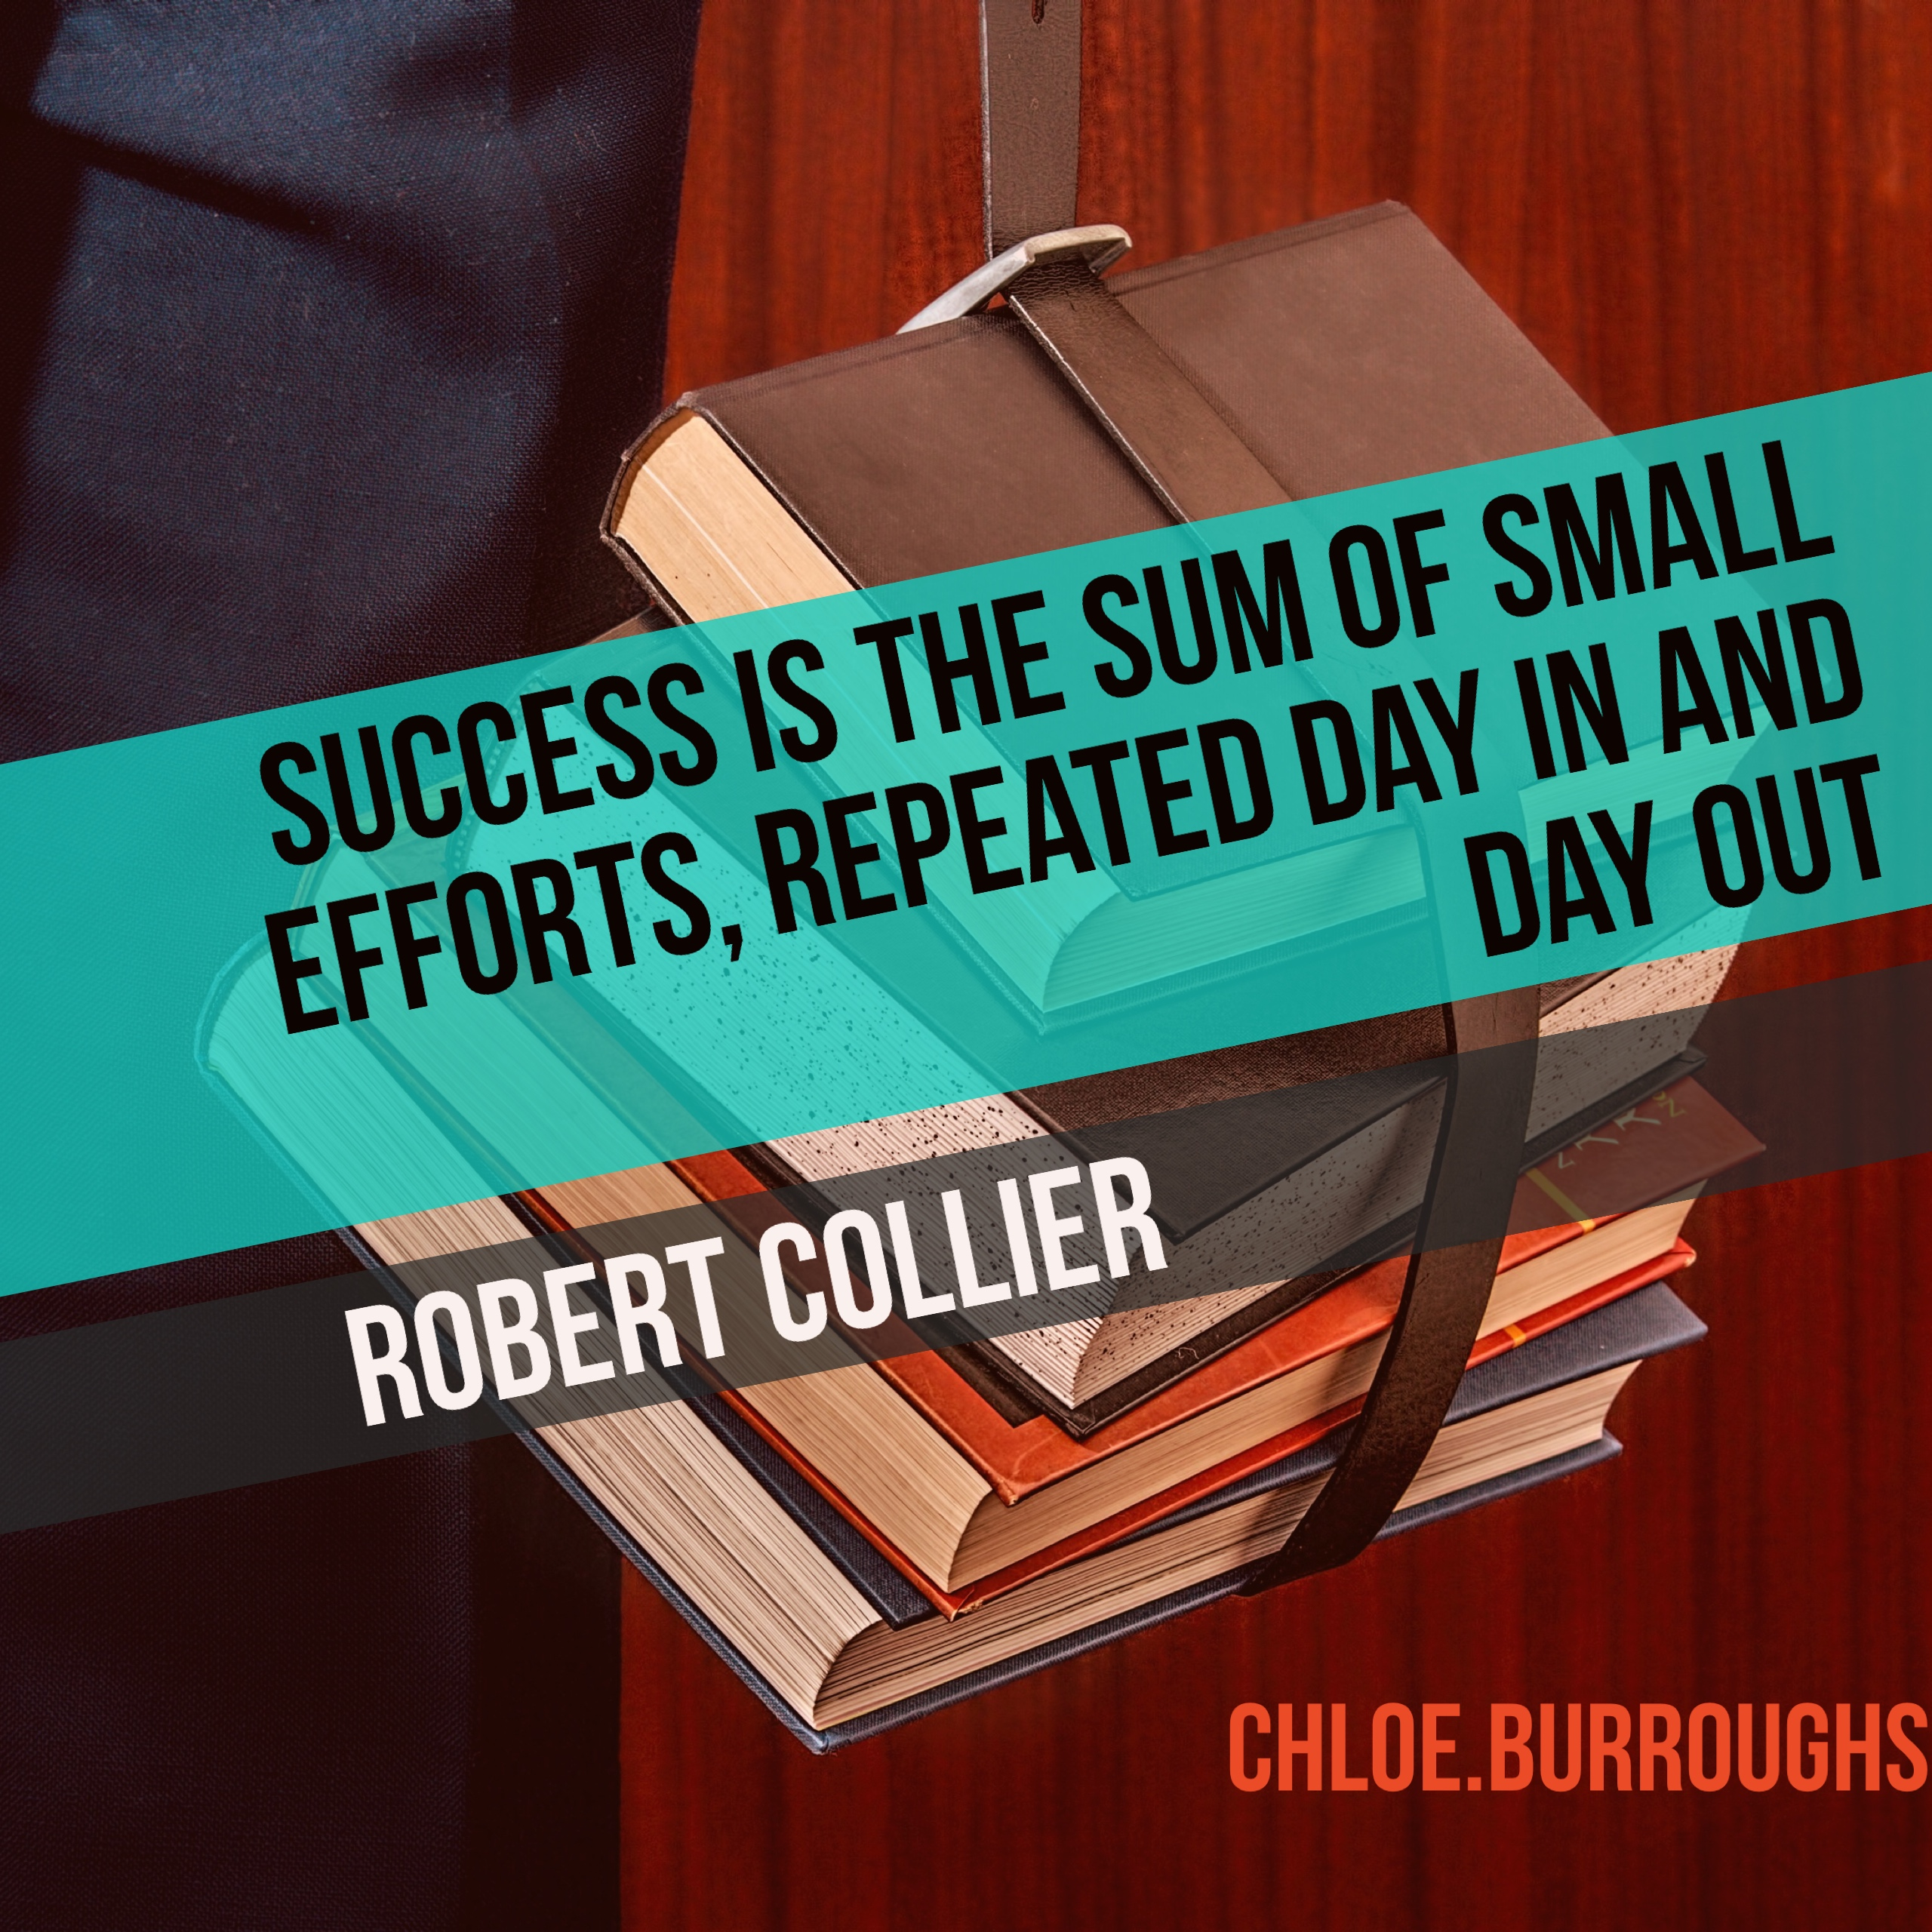 robert collier quote - success sum of small efforts